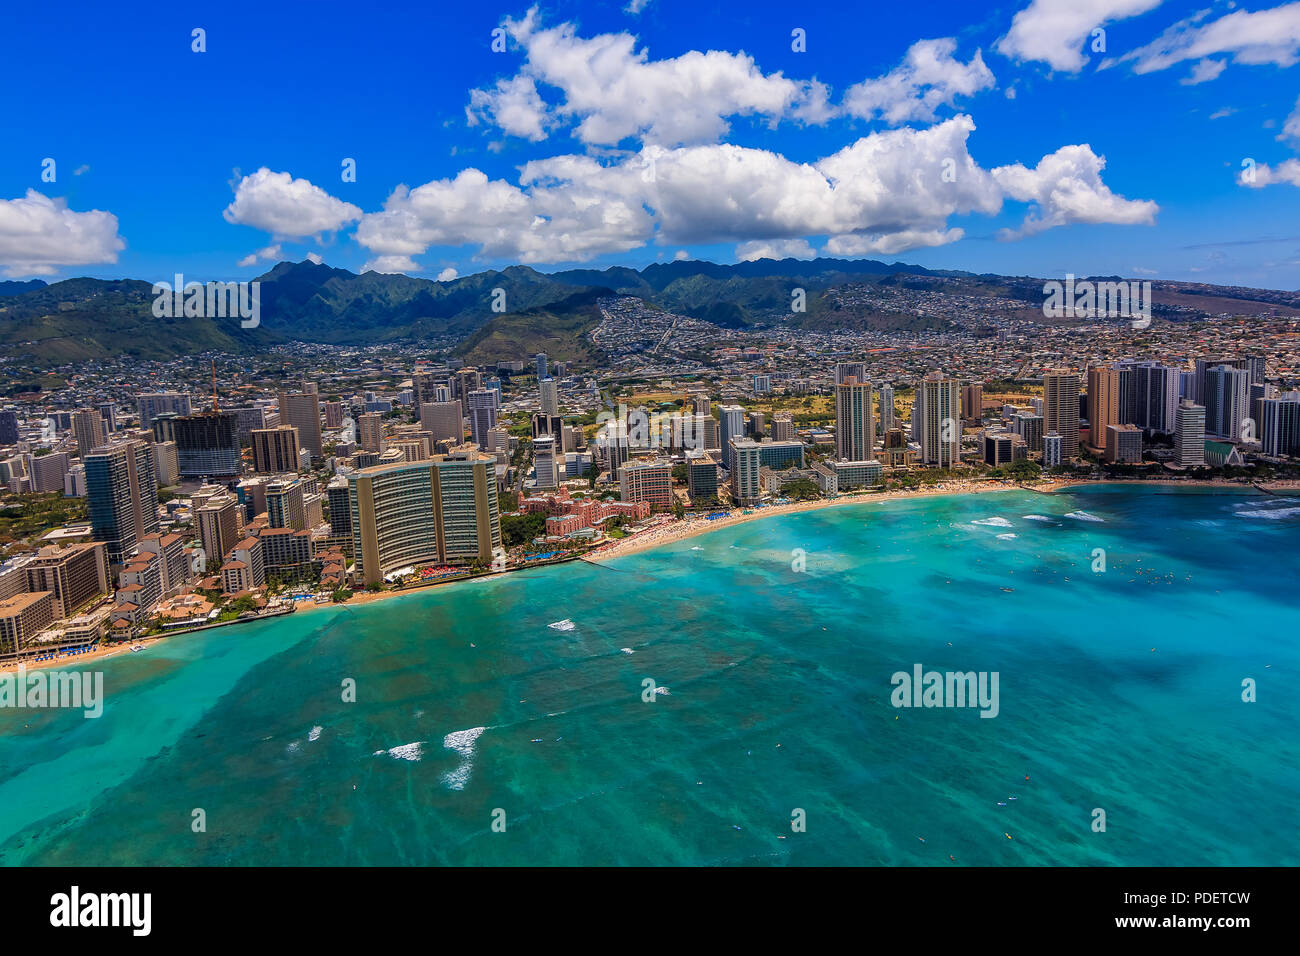 Vue aérienne de la plage de Waikiki à Honolulu, Hawaii d'un hélicoptère Photo Stock